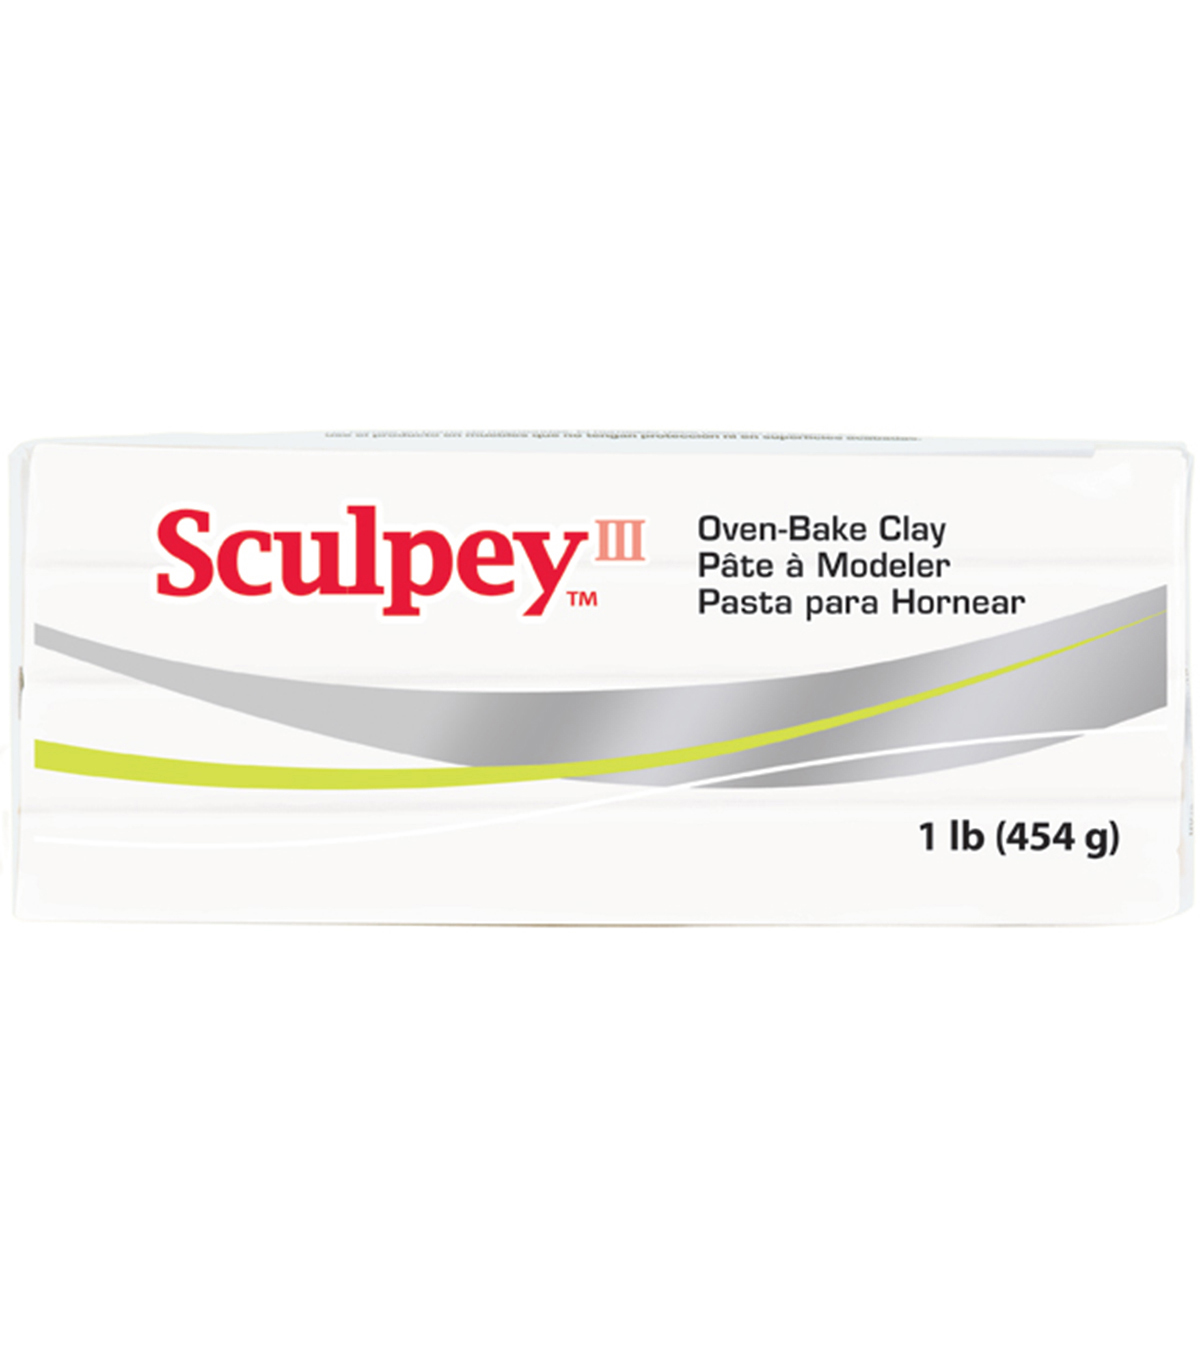 Sculpey III One Pound Packages, White